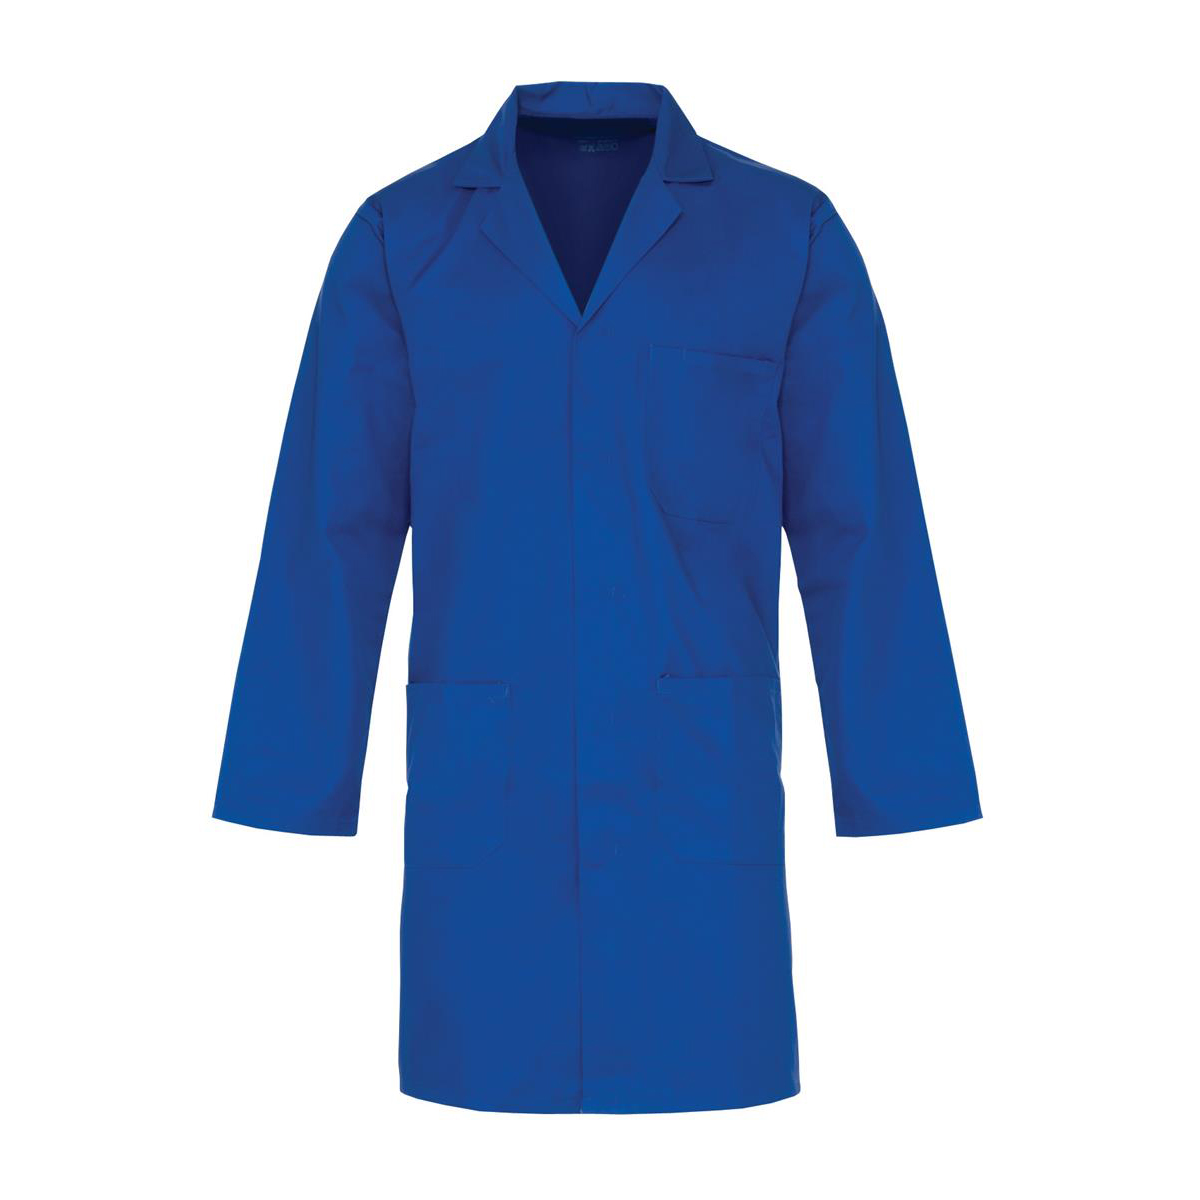 Click Lab Coat Polycotton with 3 Pockets Small Navy Ref PCWCN38 *Approx 3 Day Leadtime*